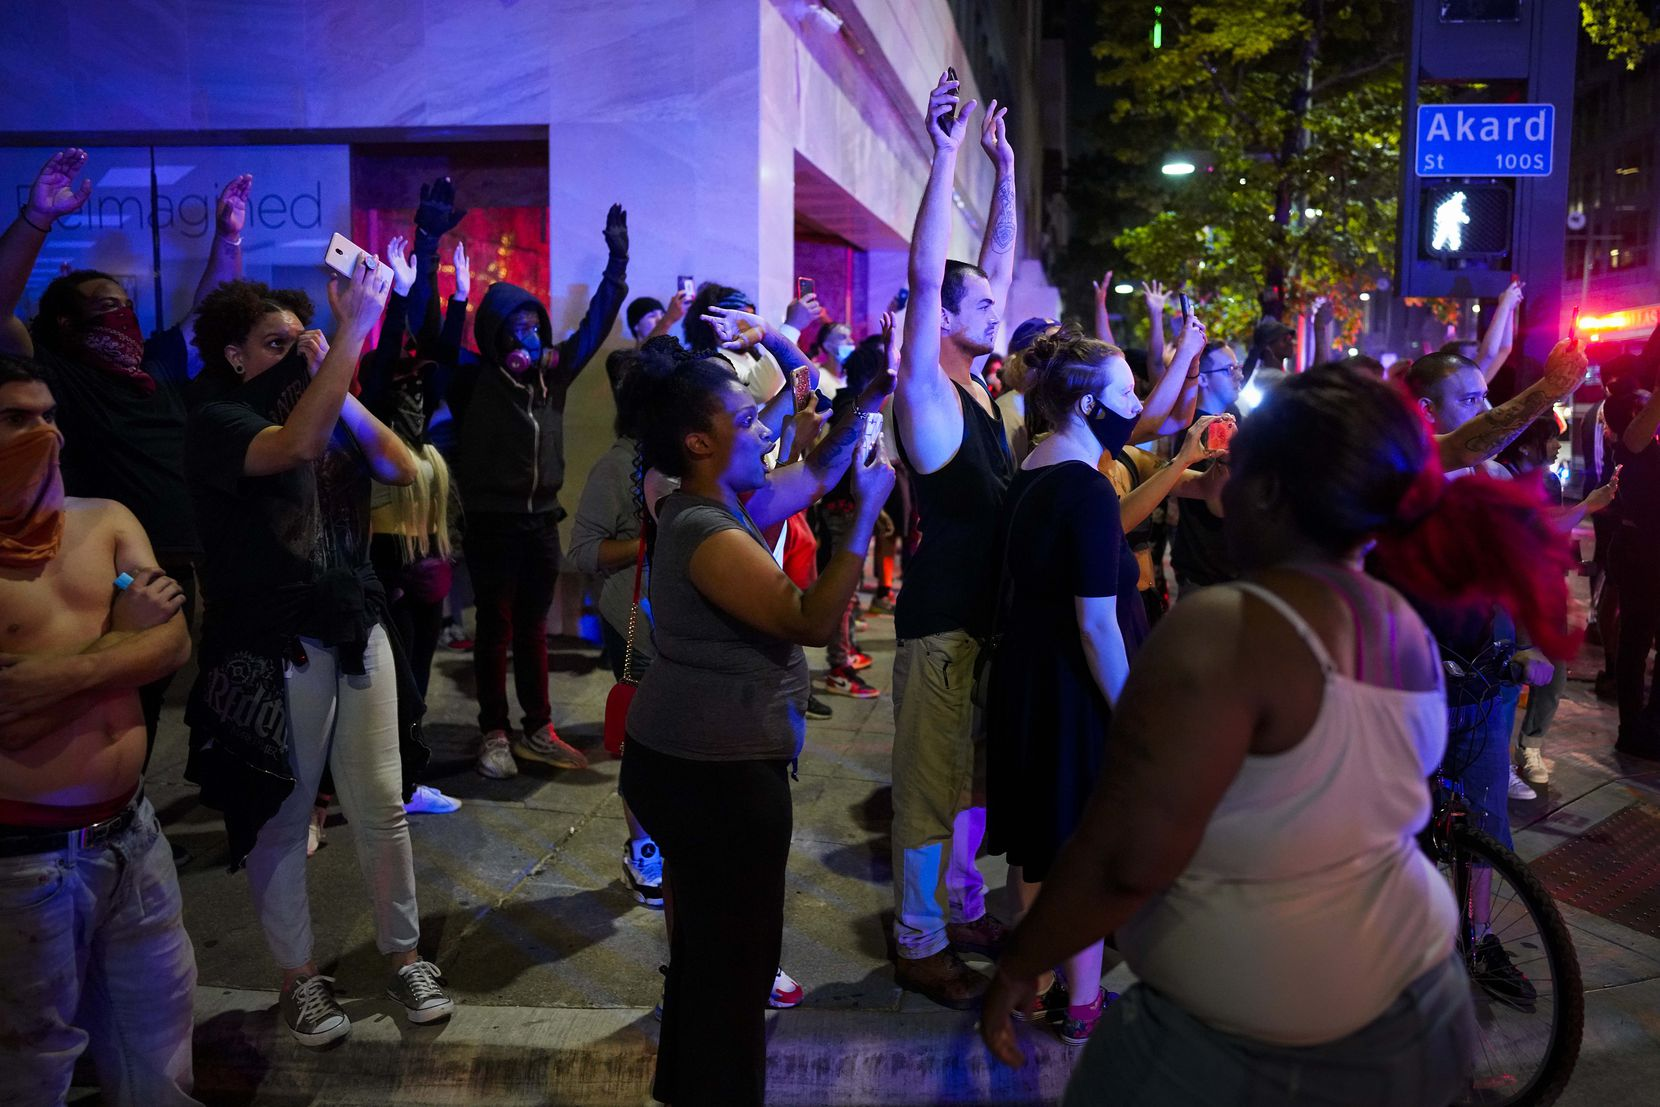 A group of people raise their hands at the corner of Akard and Main Streets downtown after being told to disperse, and immediately before teargas was deployed, by Dallas police following a protest against police brutality in the early morning hours of Saturday, May 30, 2020, in Dallas.